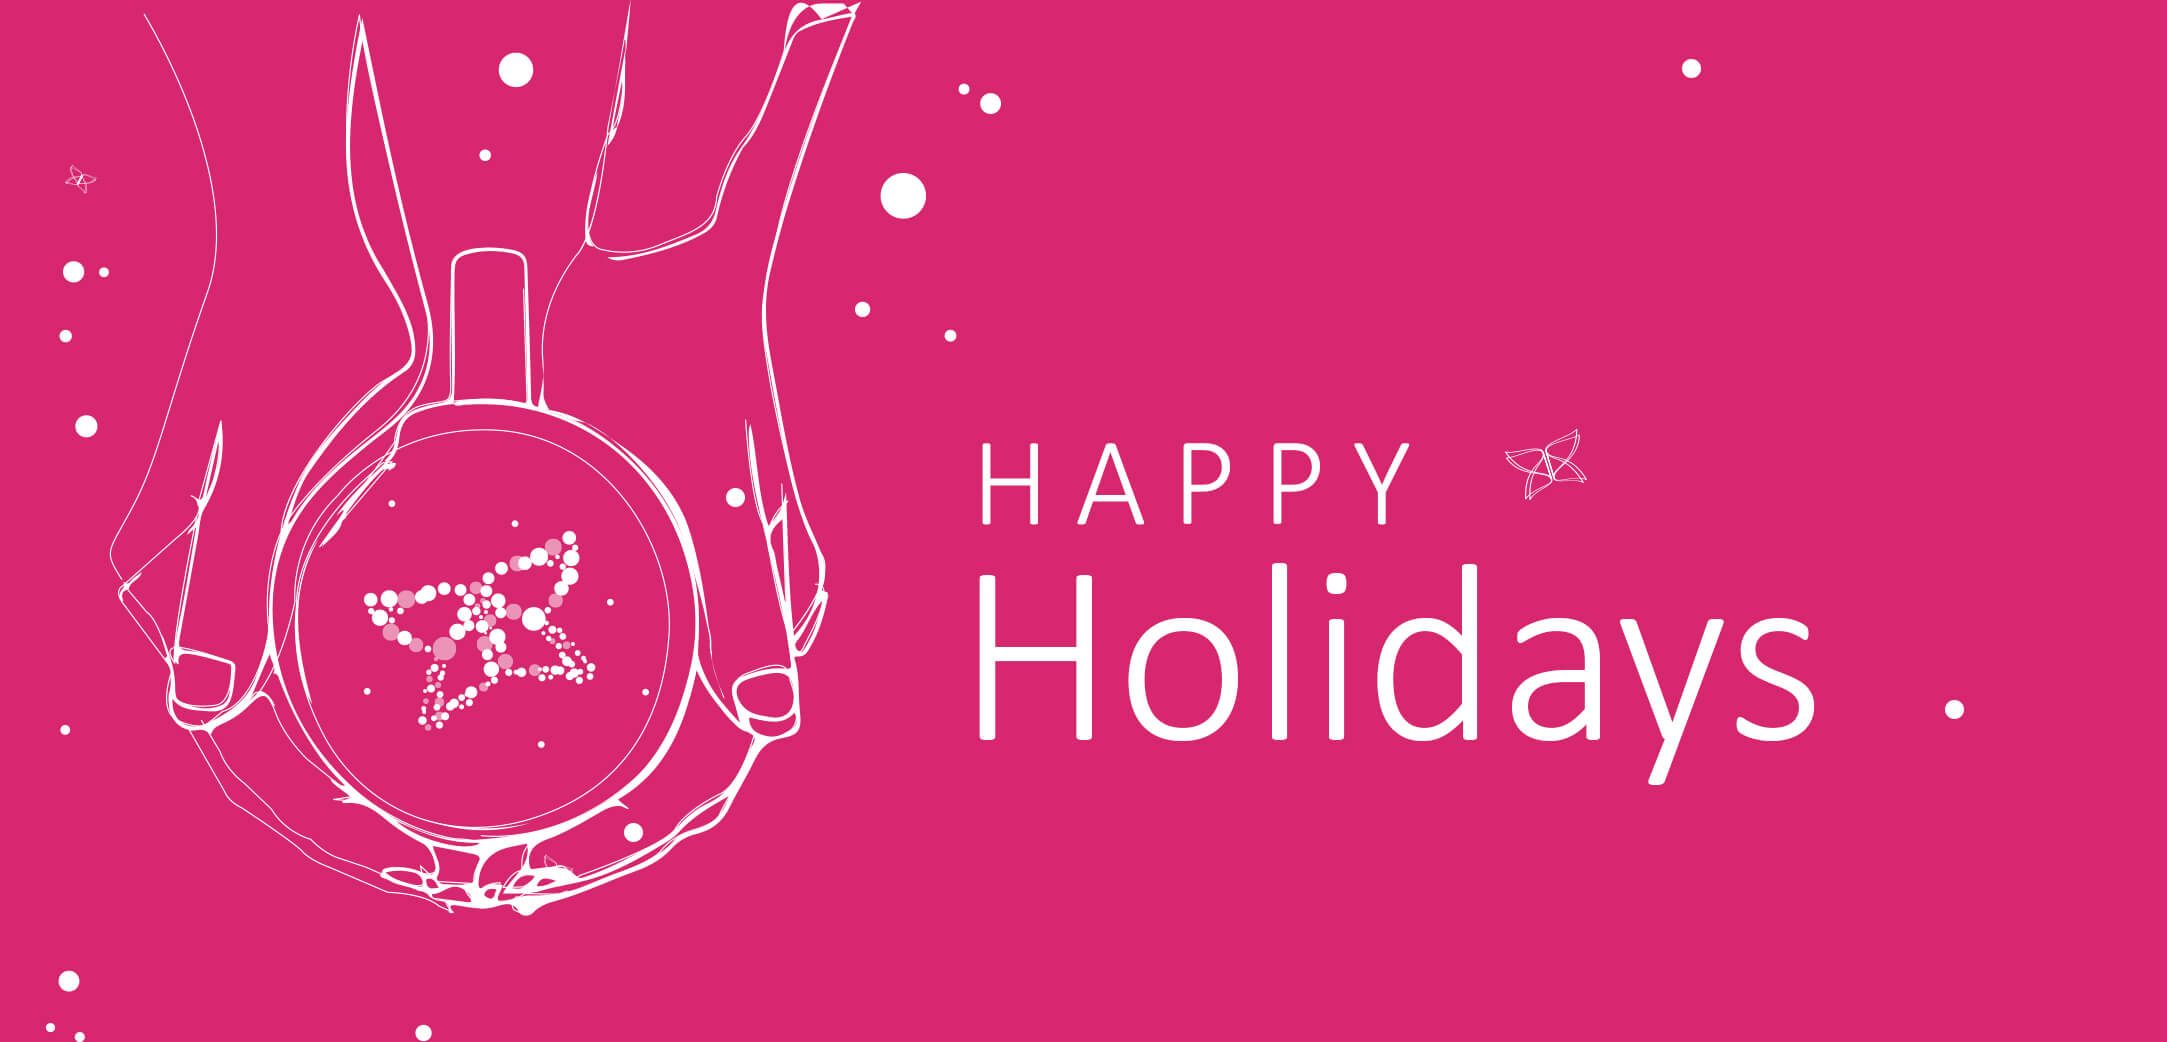 Wishing you a happy holiday season and a  joyous new year!